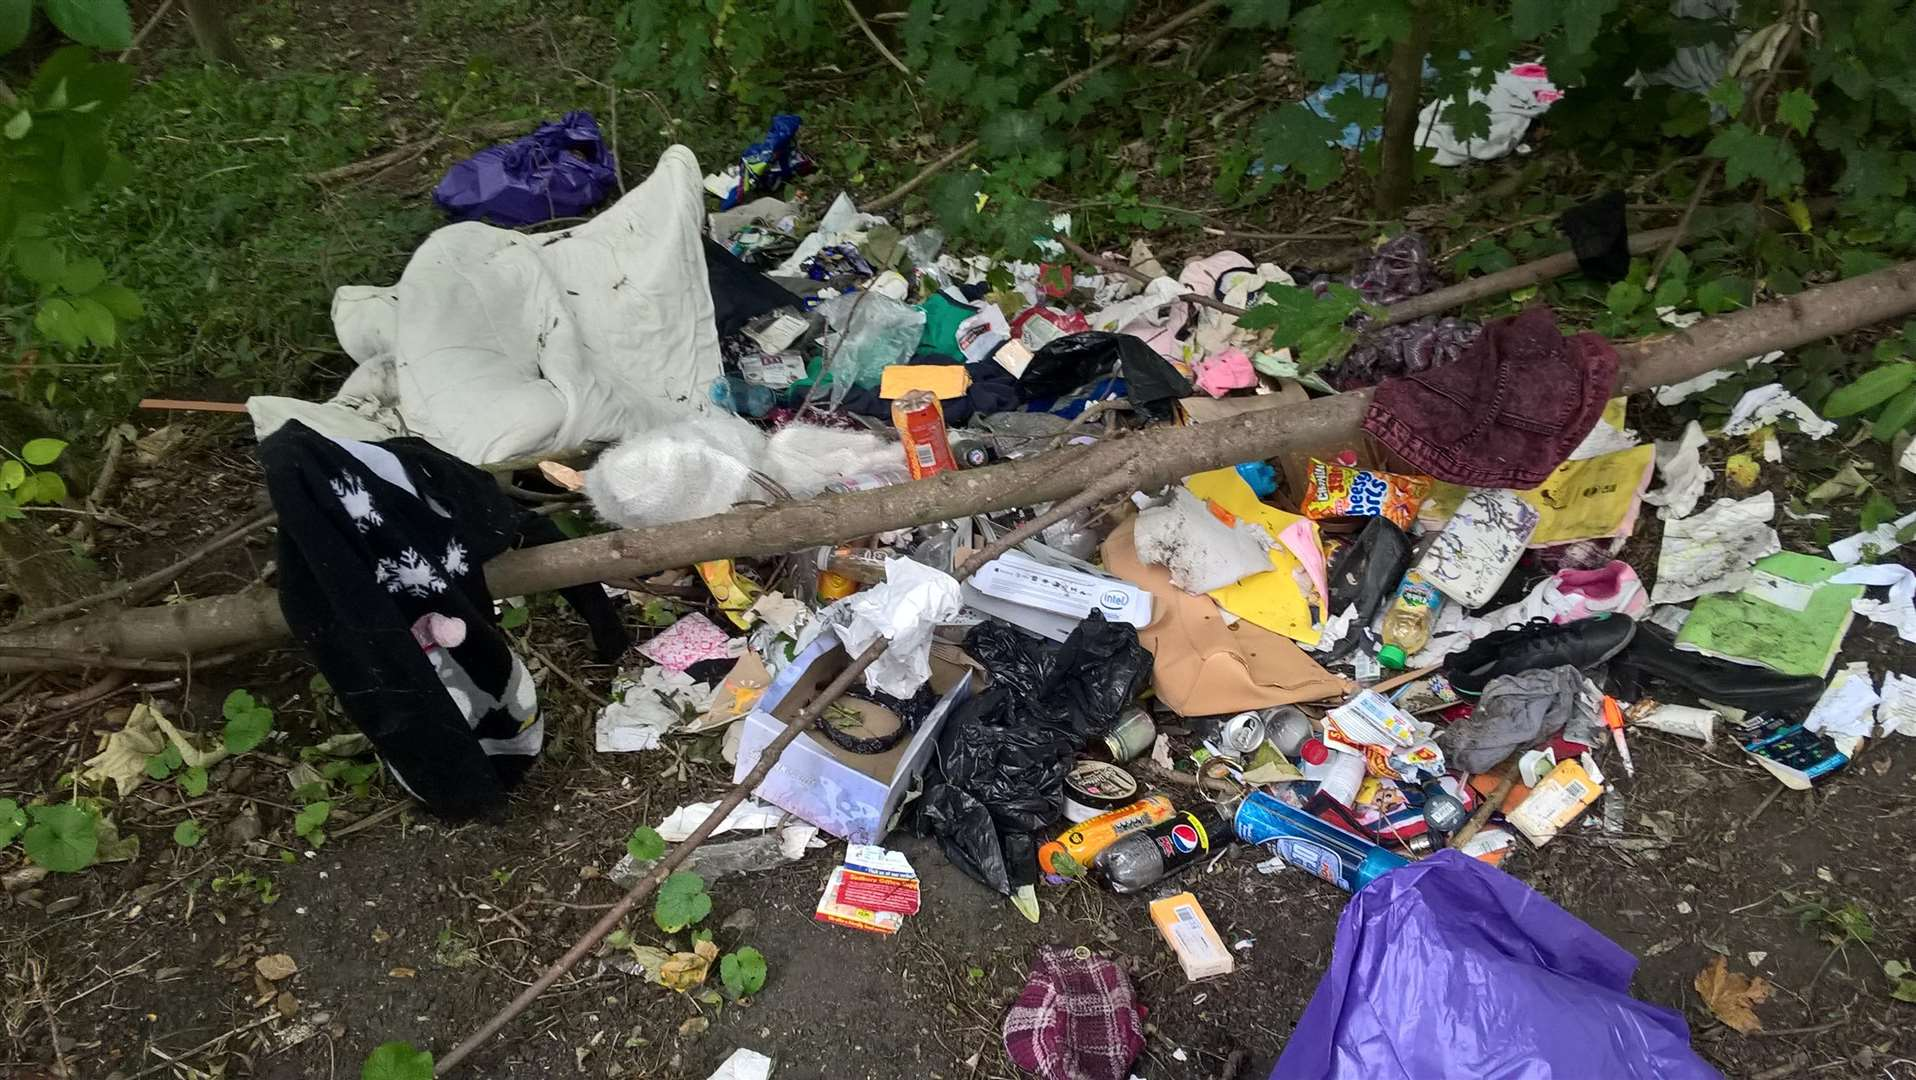 Joanne Phillips, 42, of Brendon Drive, Halstead, was ordered to pay a total of £550, after pleading guilty to fly tipping in Halstead, Little Maplestead and Ridgewell. Photo supplied by Braintree District Council. (4968556)